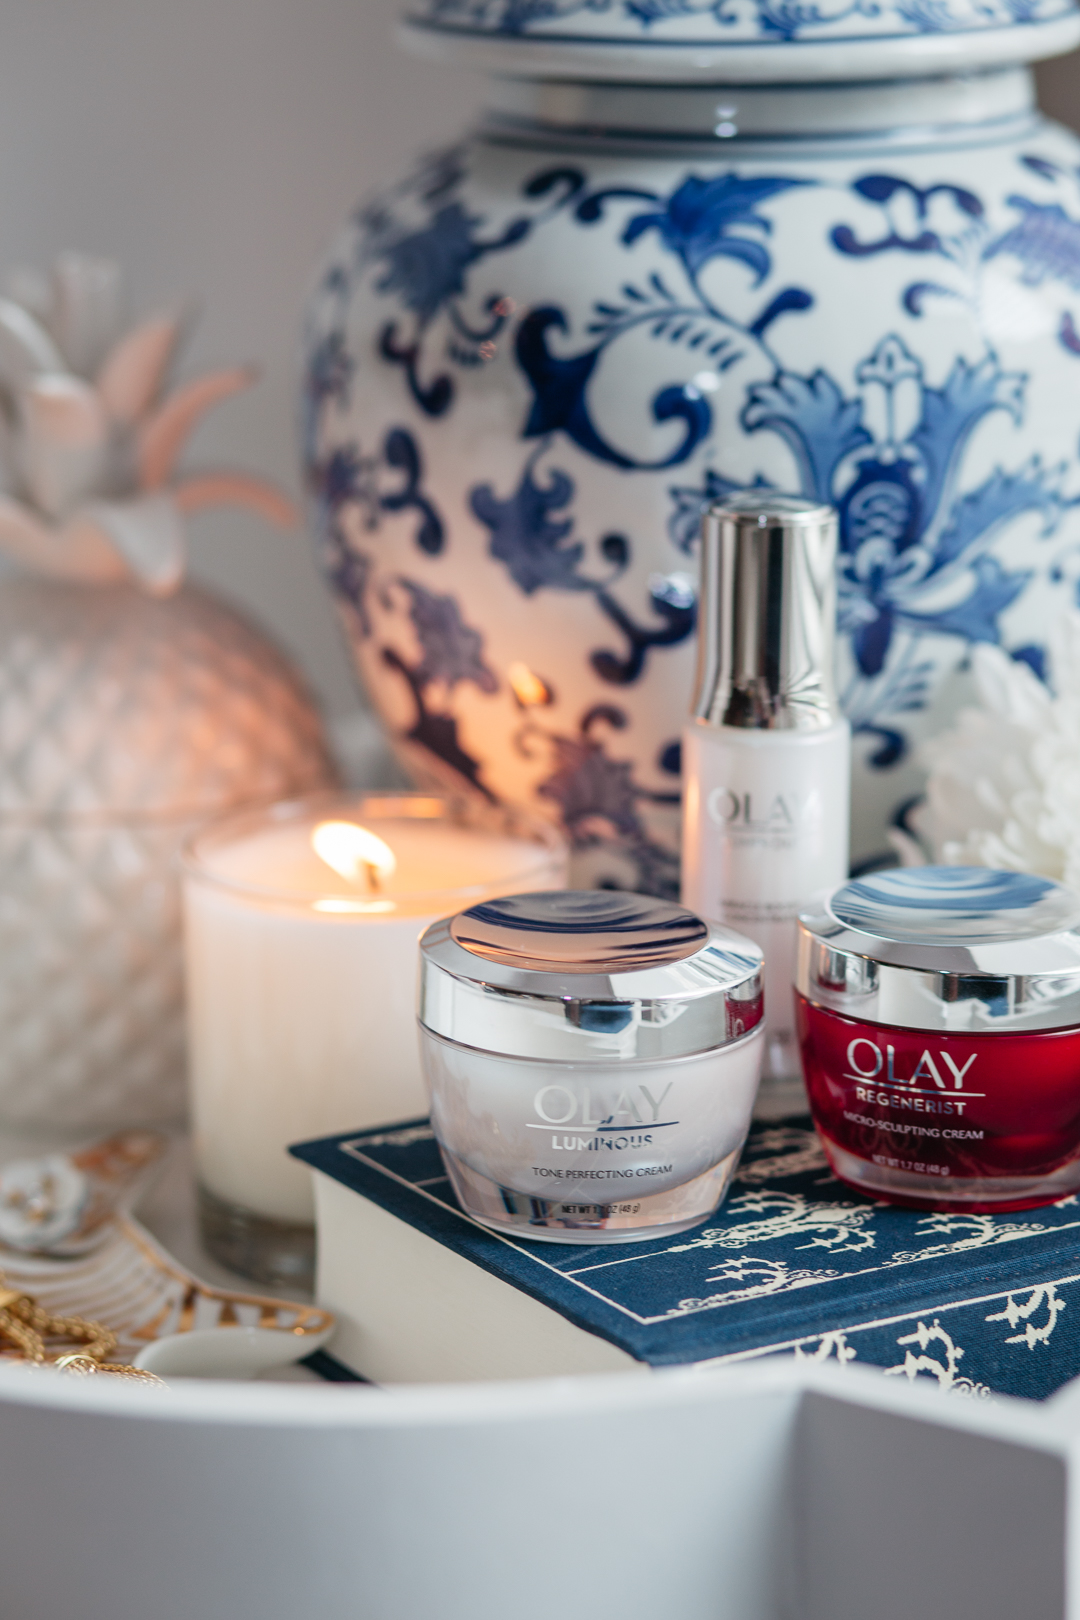 The Best Anti Aging Products From Olay